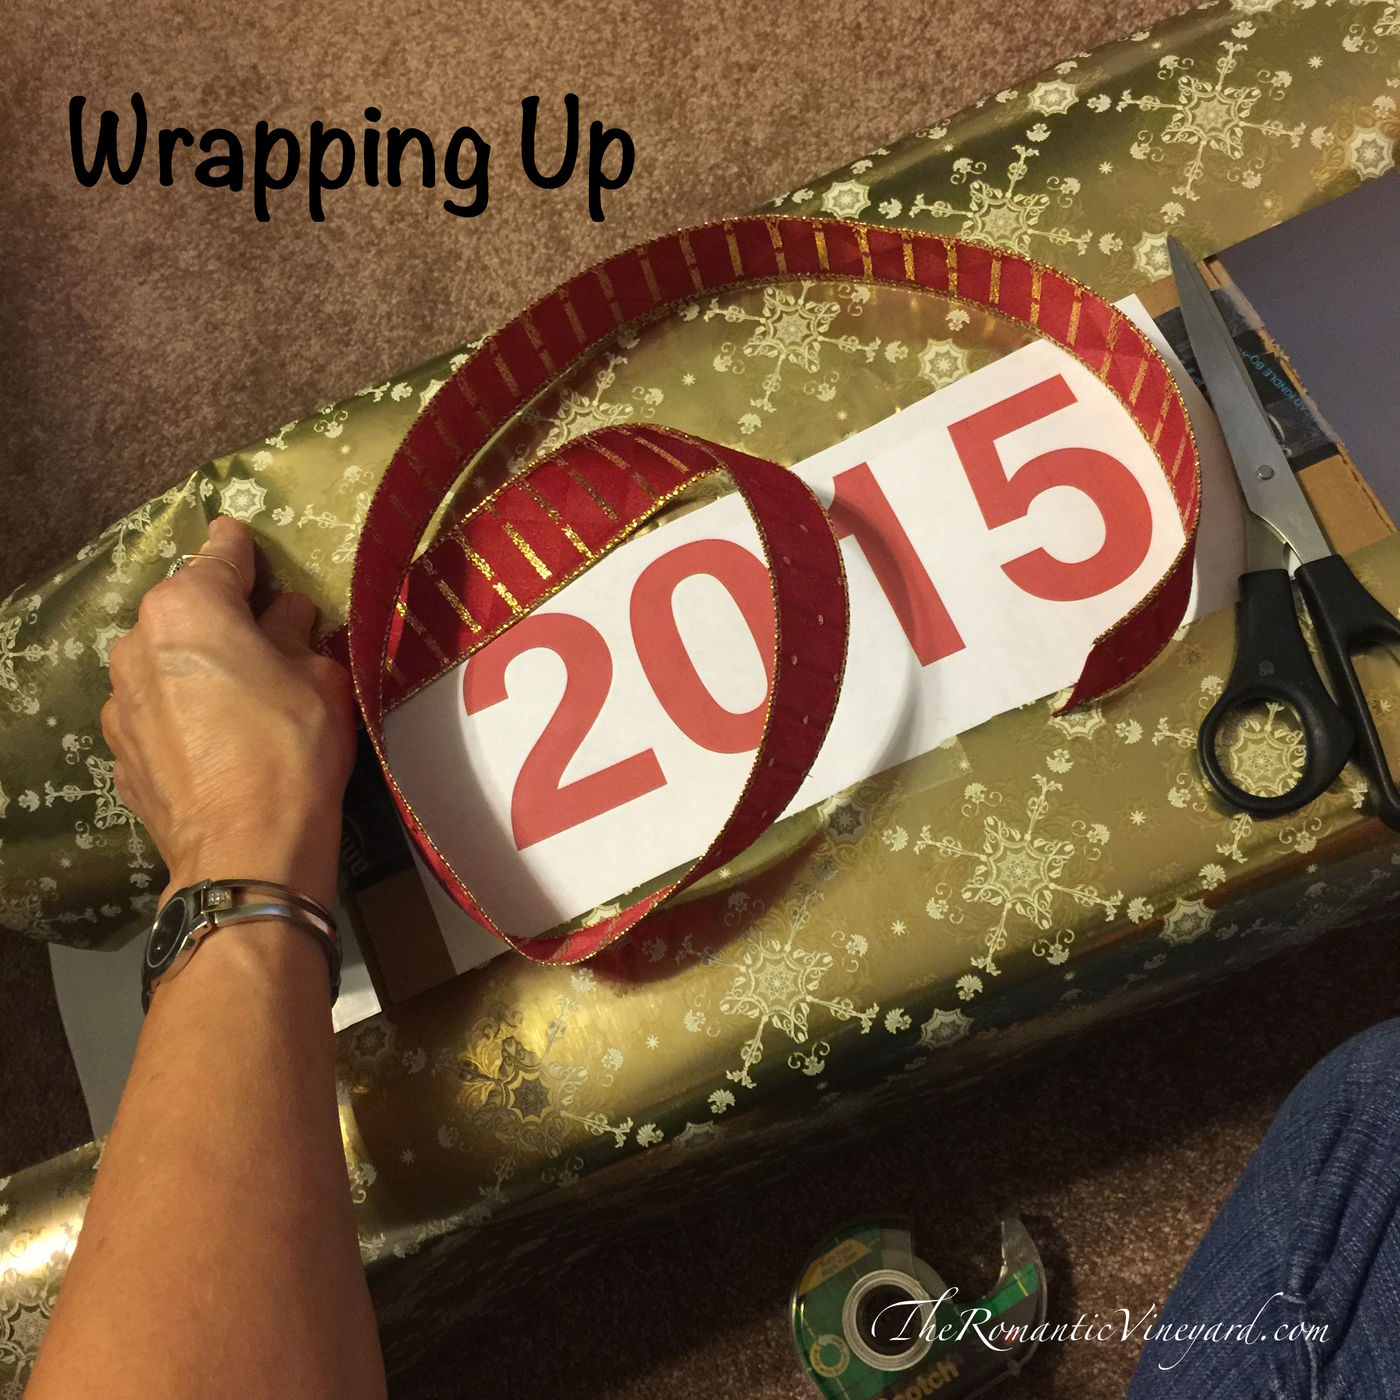 Wrapping Up 2015